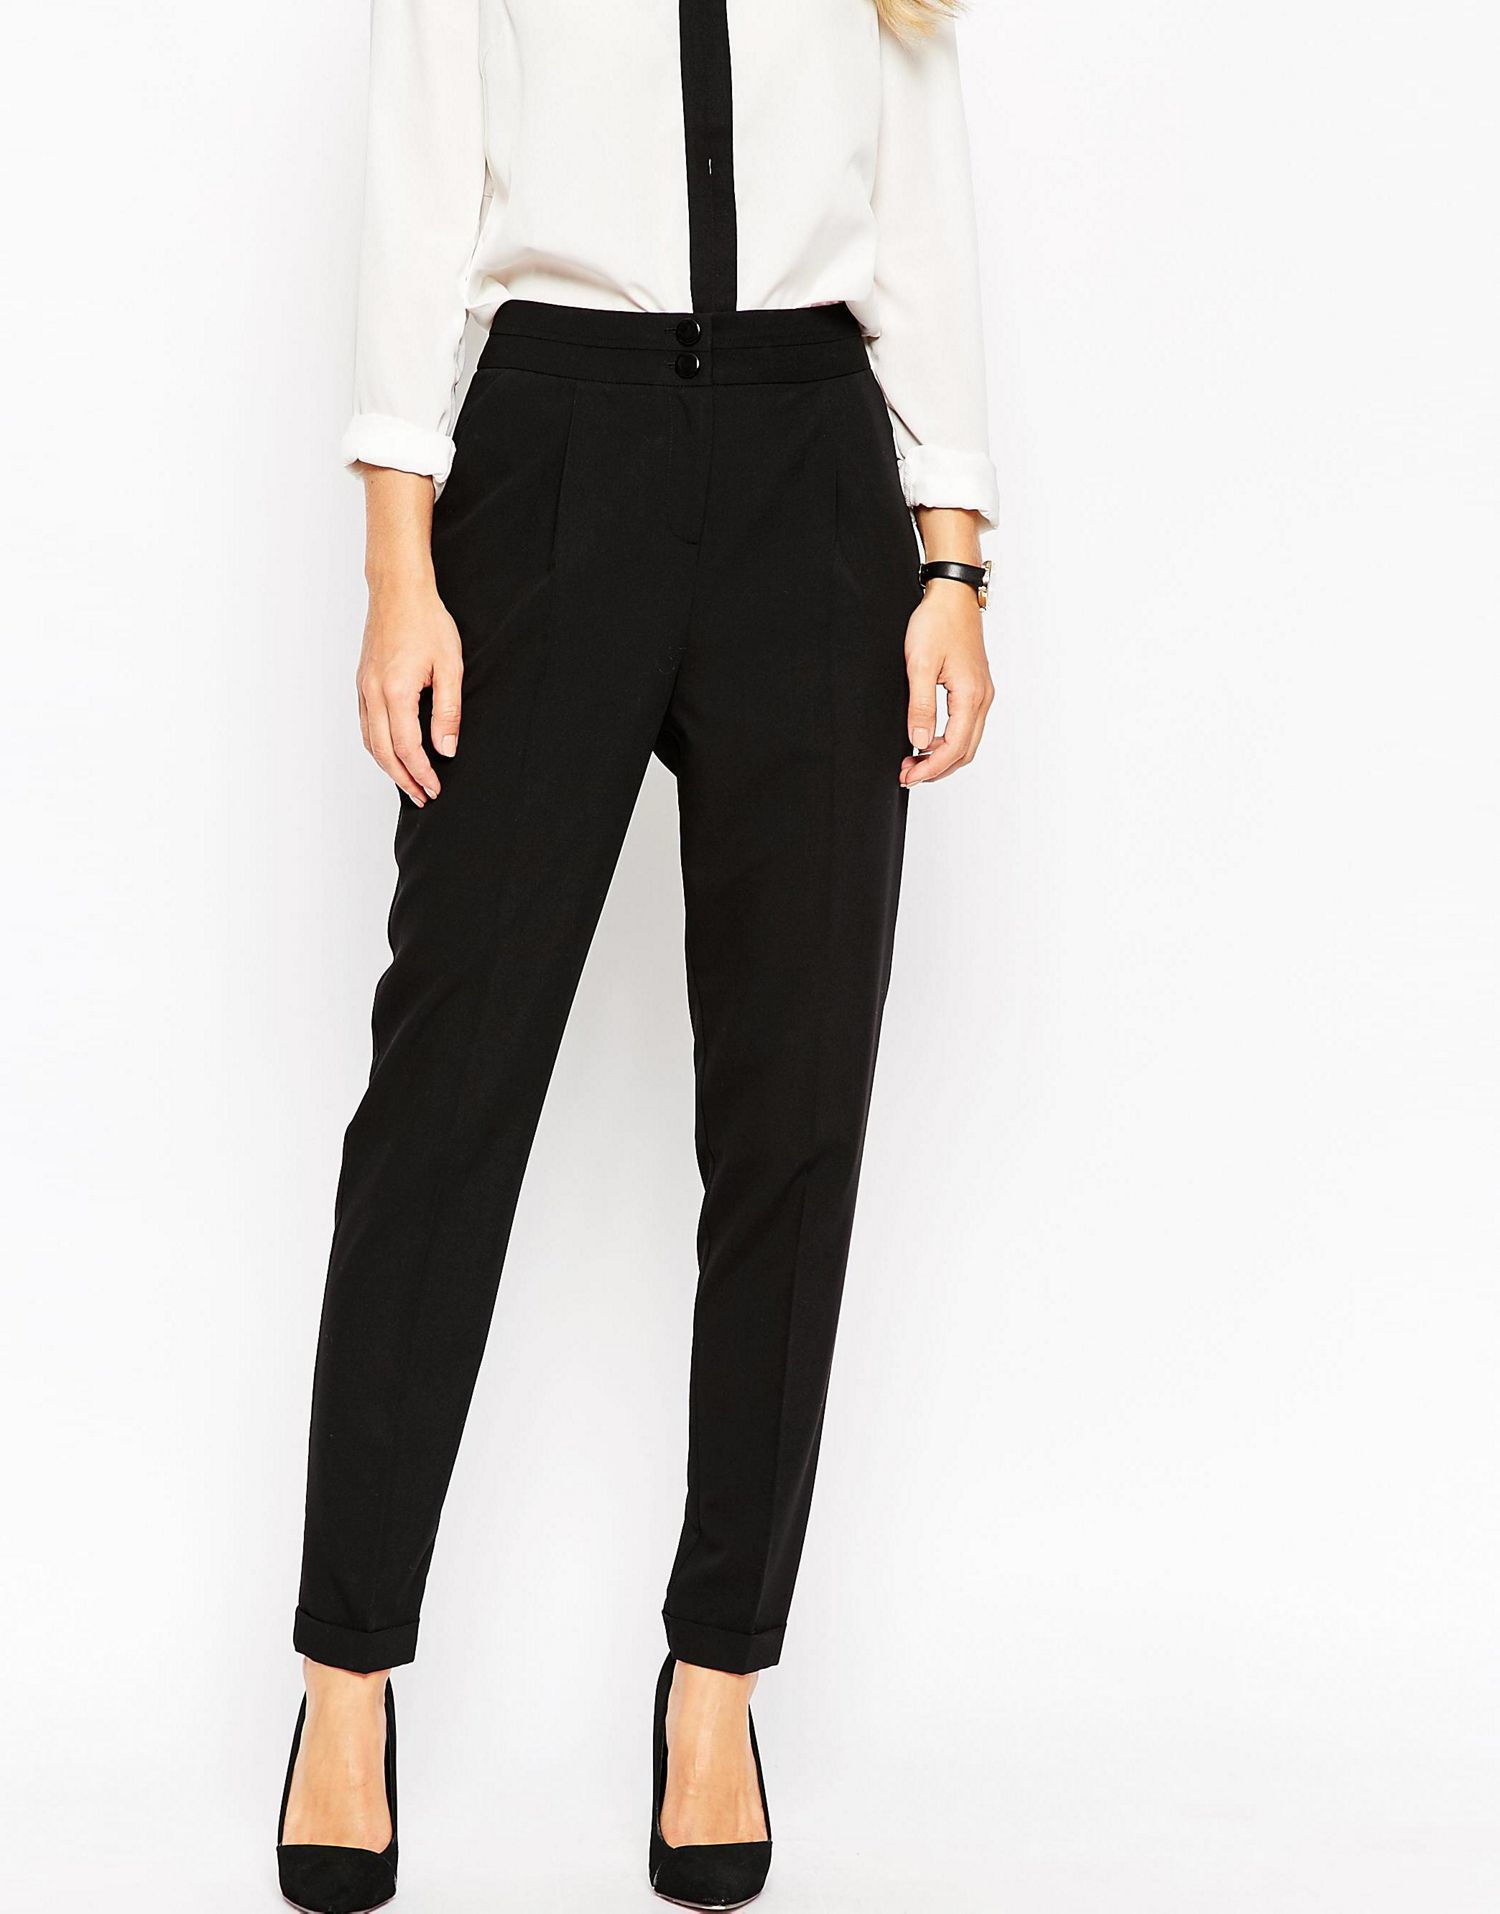 Tailored High Waist Pants